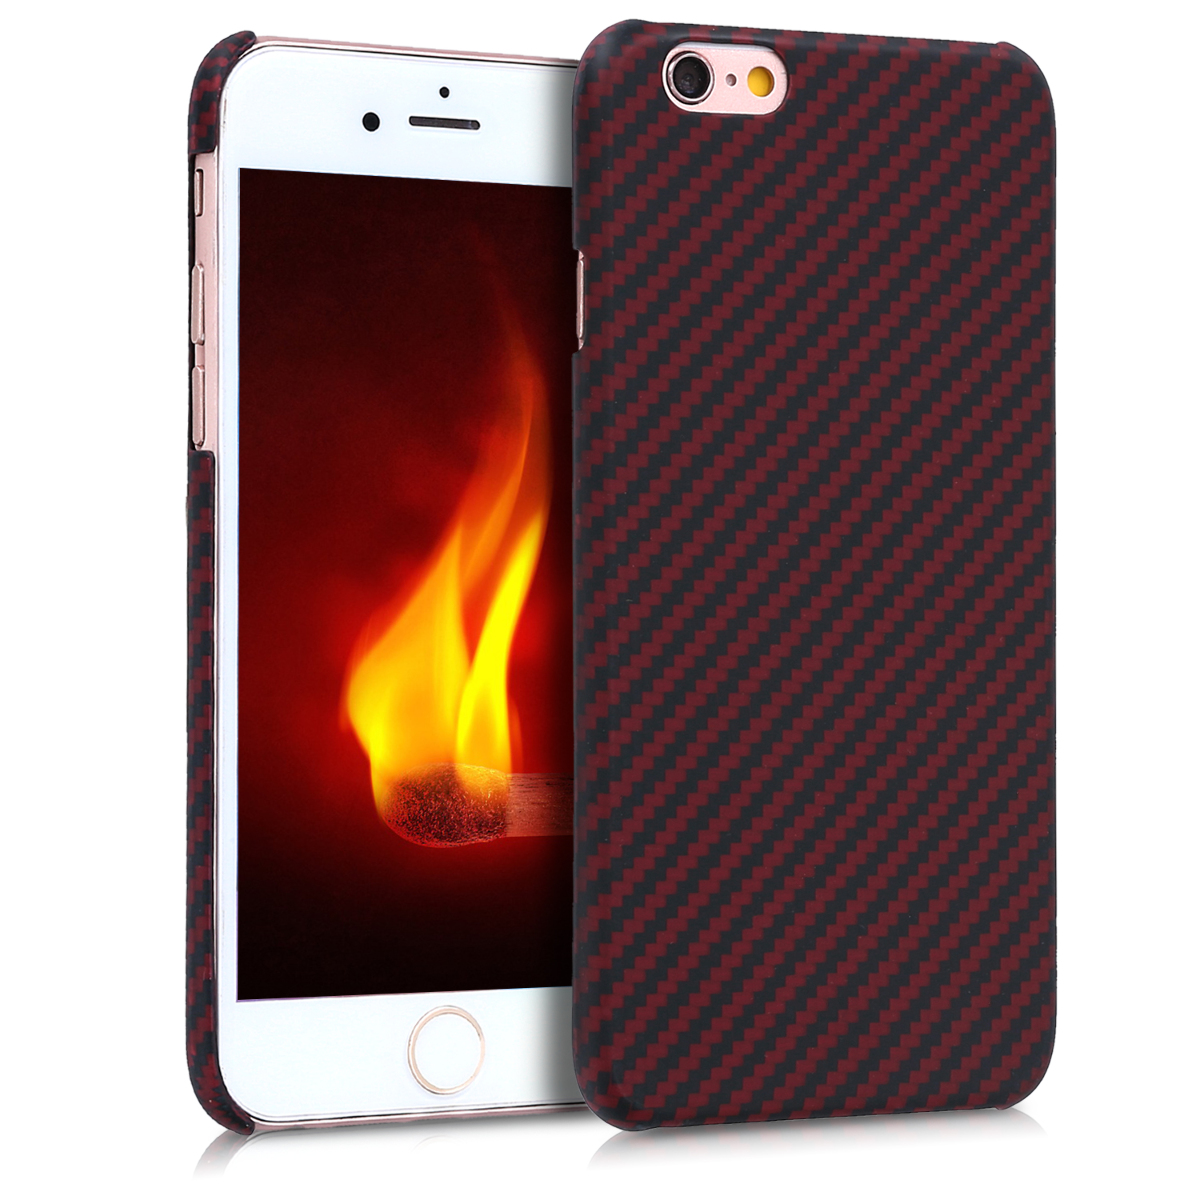 Kalibri Aramid Fiber Body - Σκληρή Θήκη iPhone 6 / 6S - Red / Black Matte (43110.51)